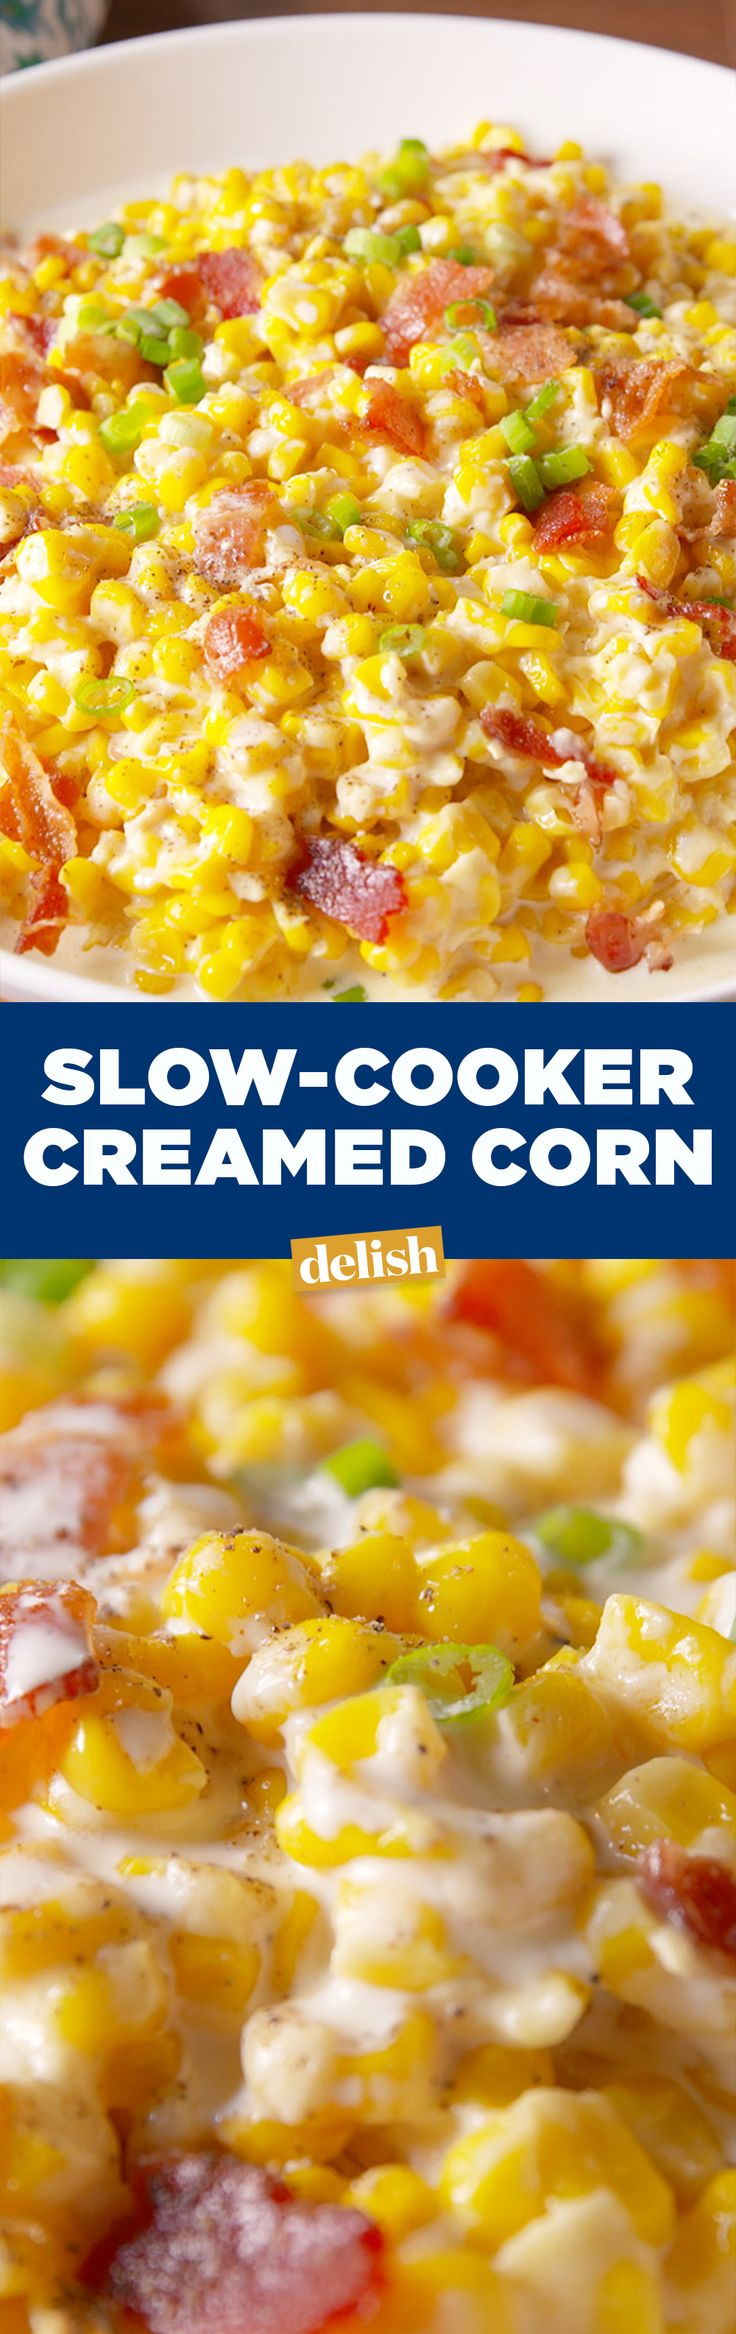 Slow-Cooker Creamed Corn is the Thanksgiving side that won't take up valuable oven space. Get the recipe on Delish.com.